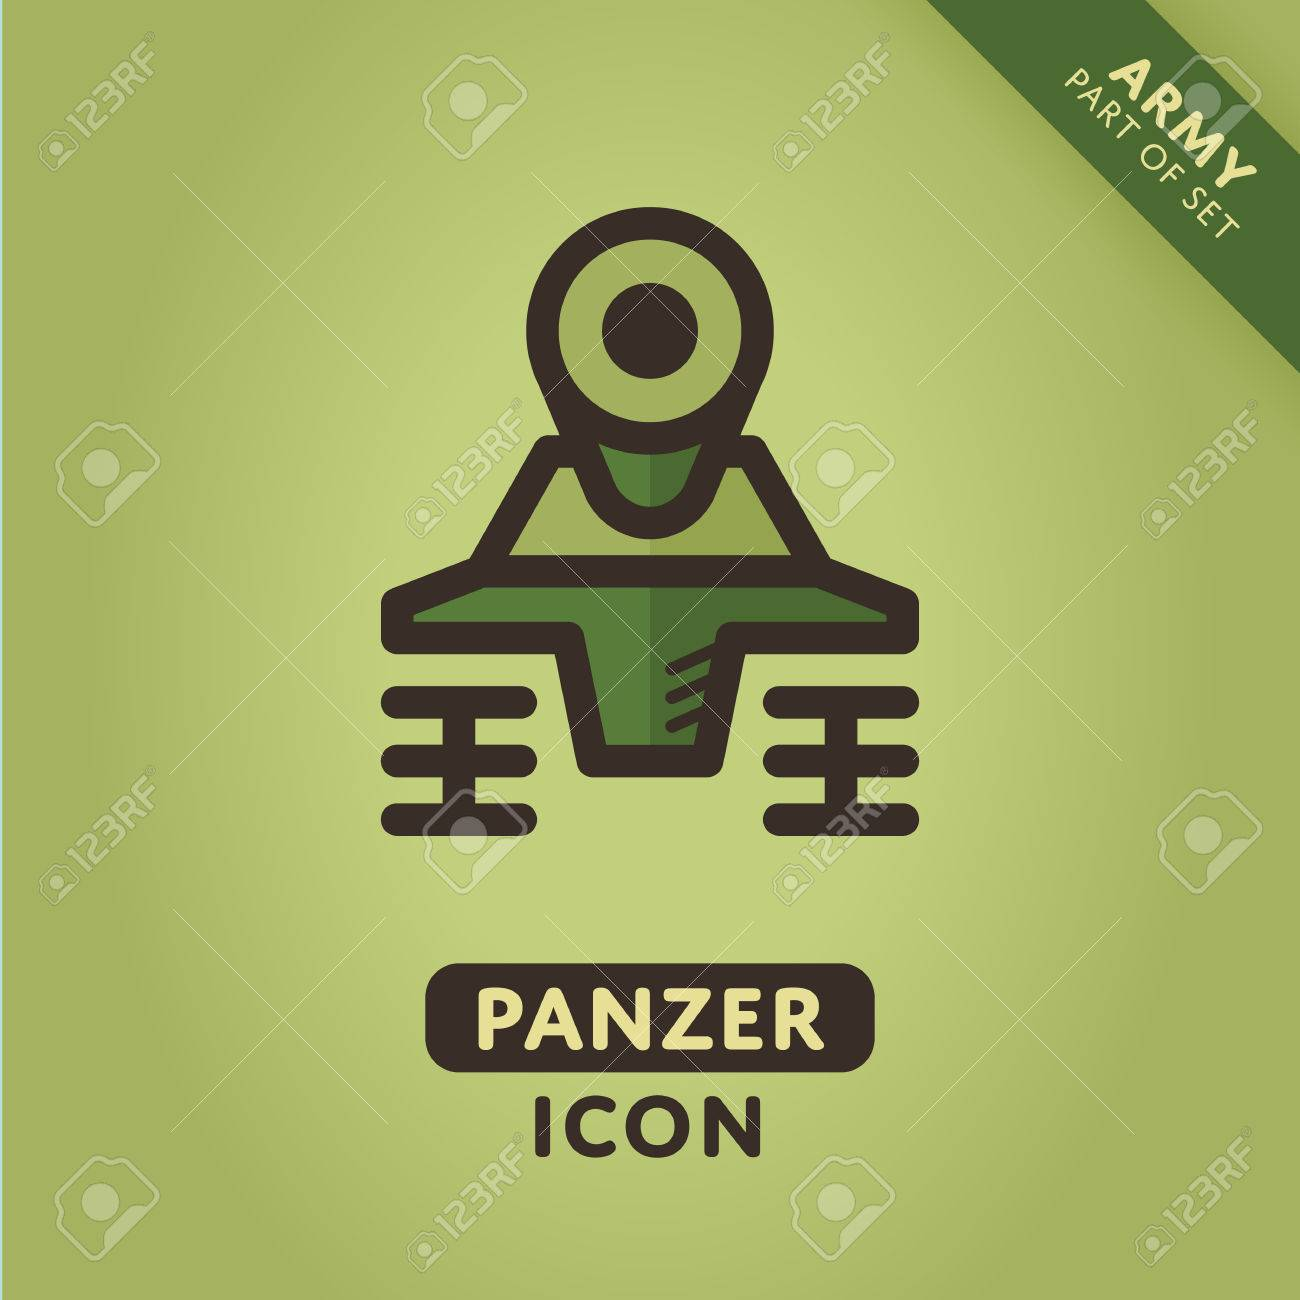 Vector Tank Icon Military Panzer Sign Army Symbol Royalty Free